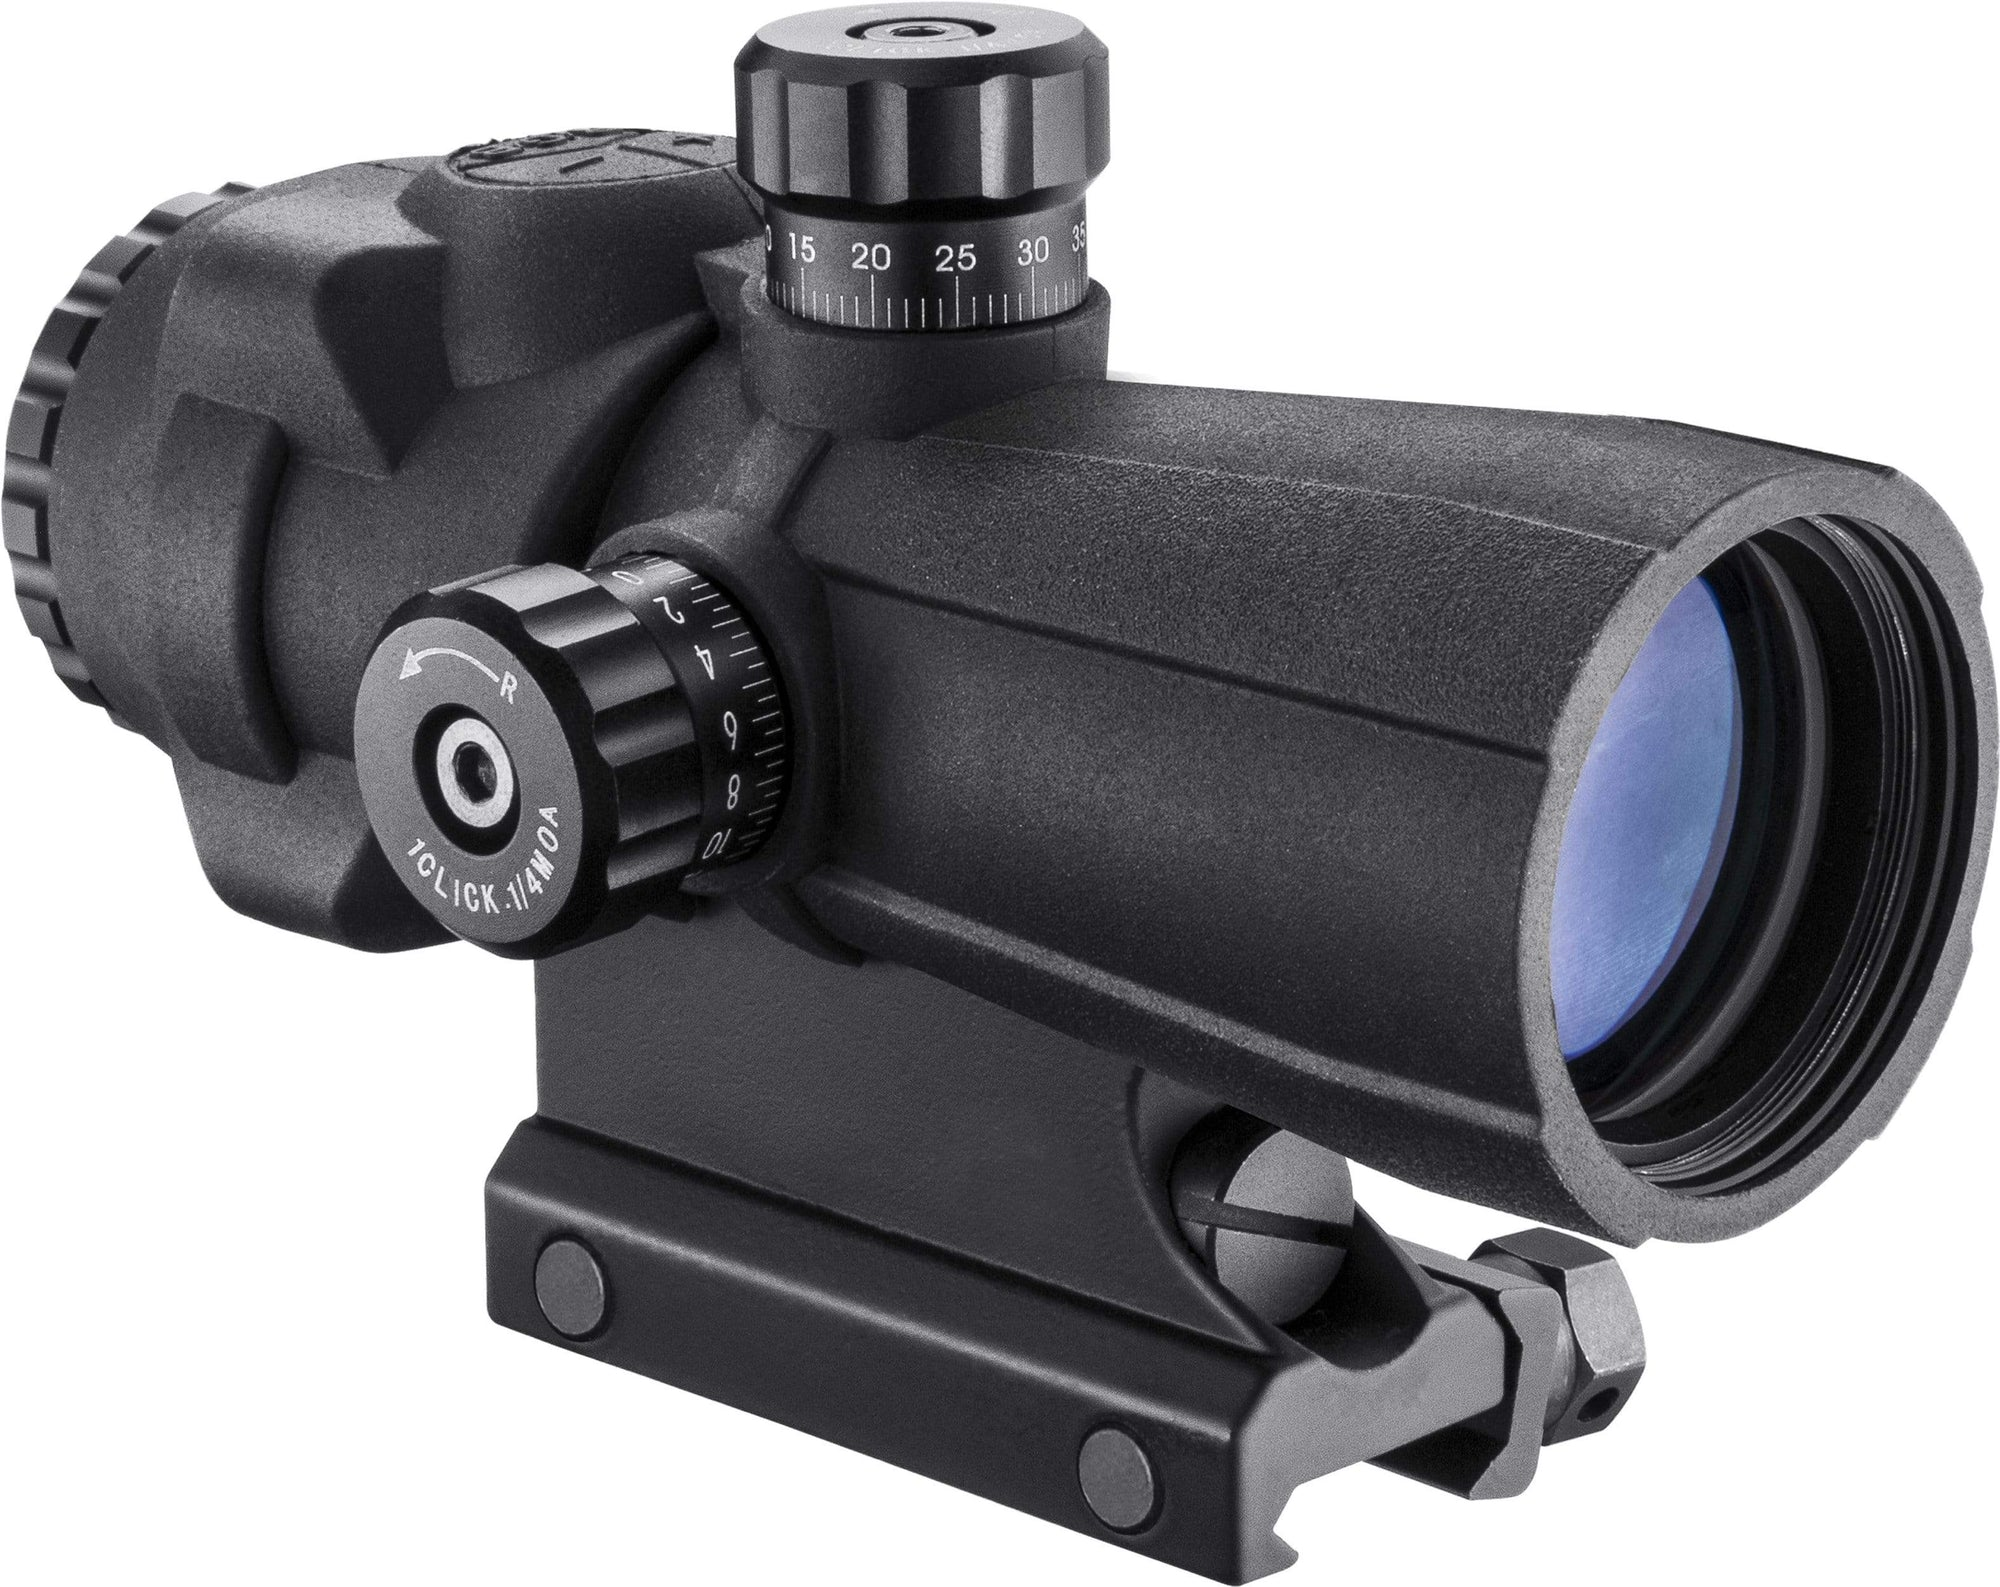 Barska 4 x 32mm AR-X PRO Prism Scope (Black) Armadillo Safe and Vault